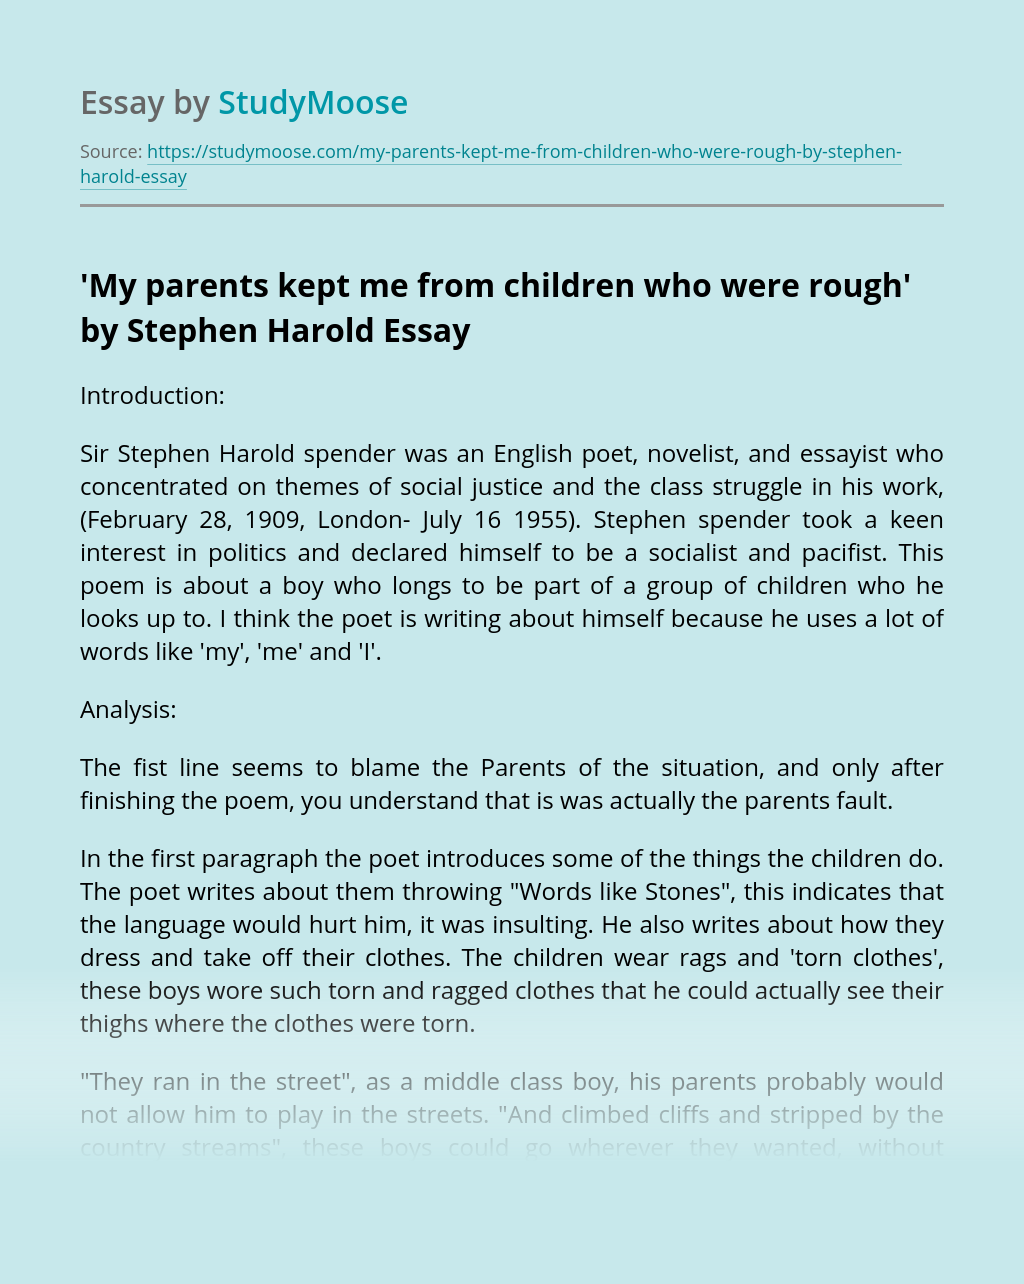 'My parents kept me from children who were rough' by Stephen Harold